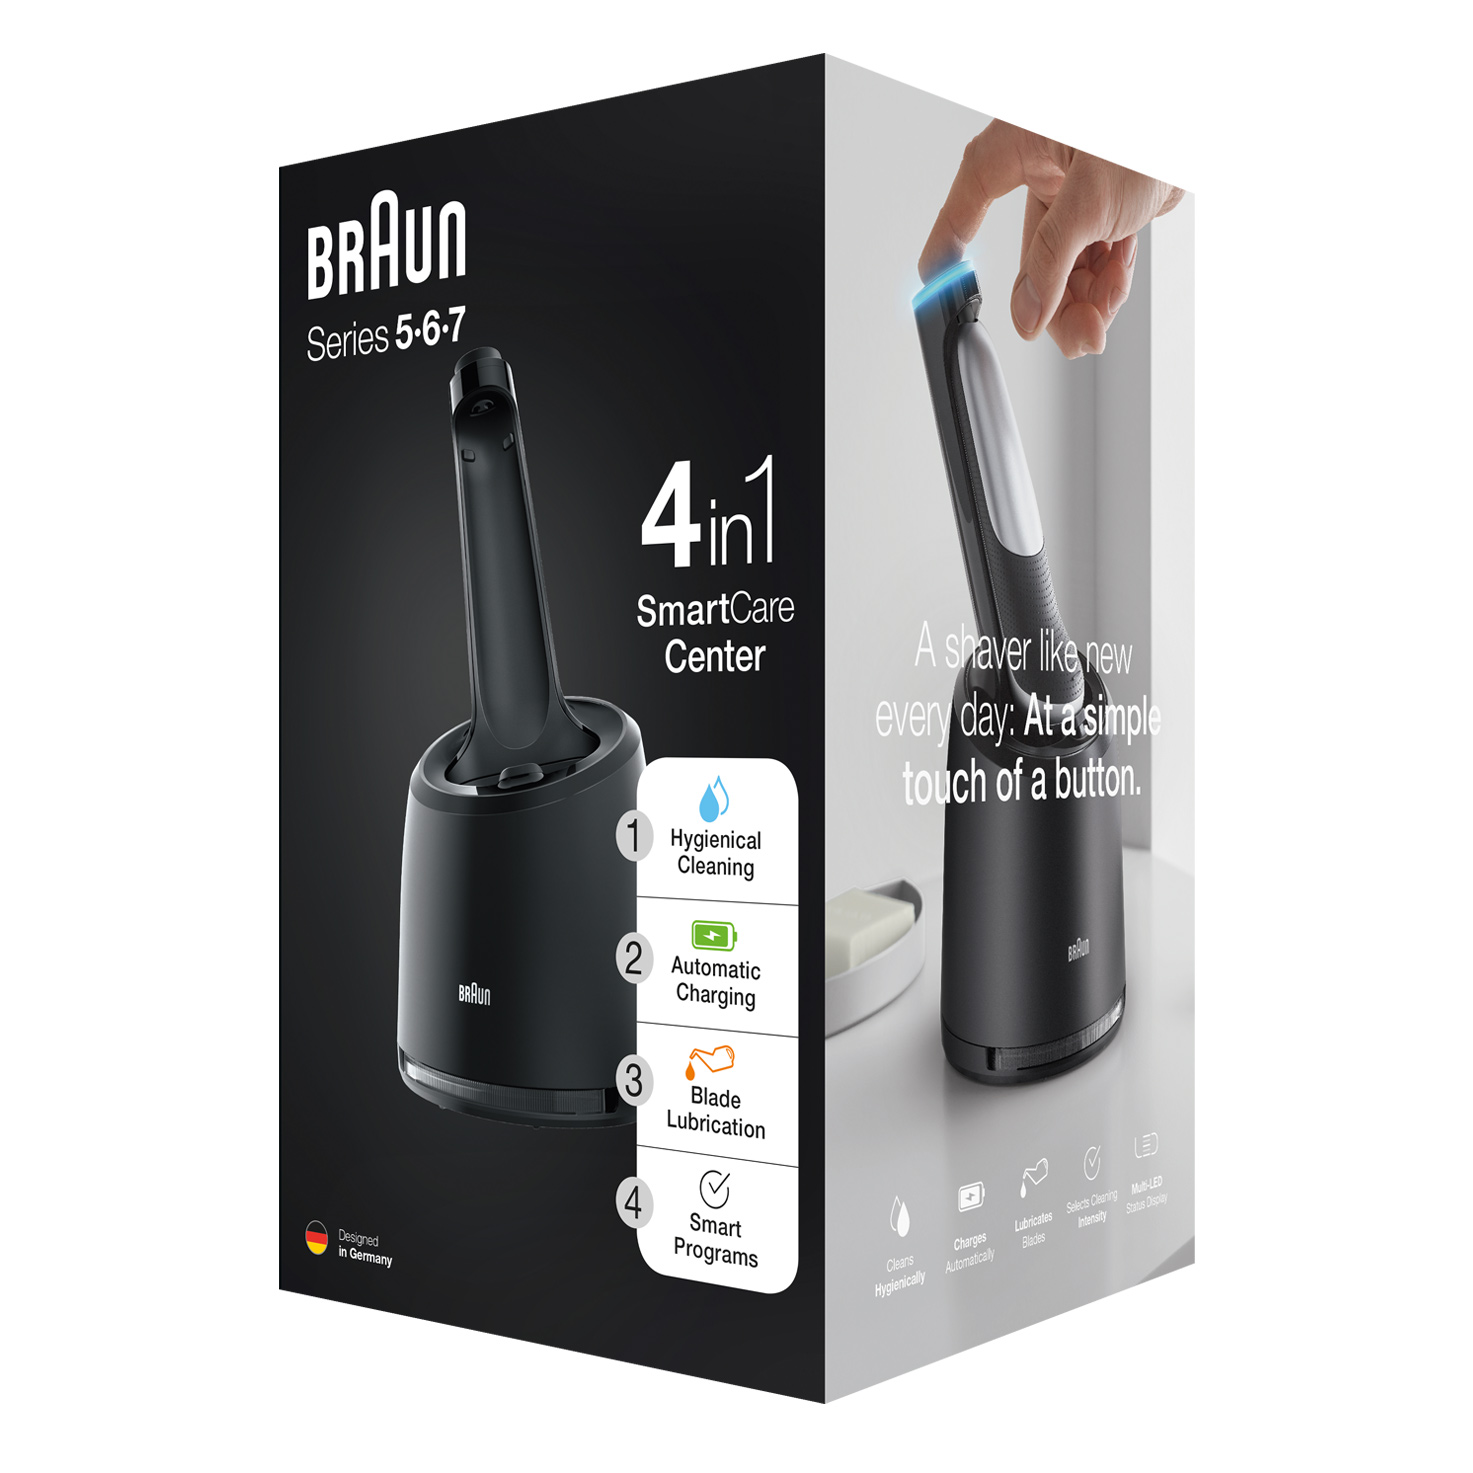 4 in 1 SmartCare Cleaning Center for Braun Series 5, 6 and 7 electric shaver (New generation)